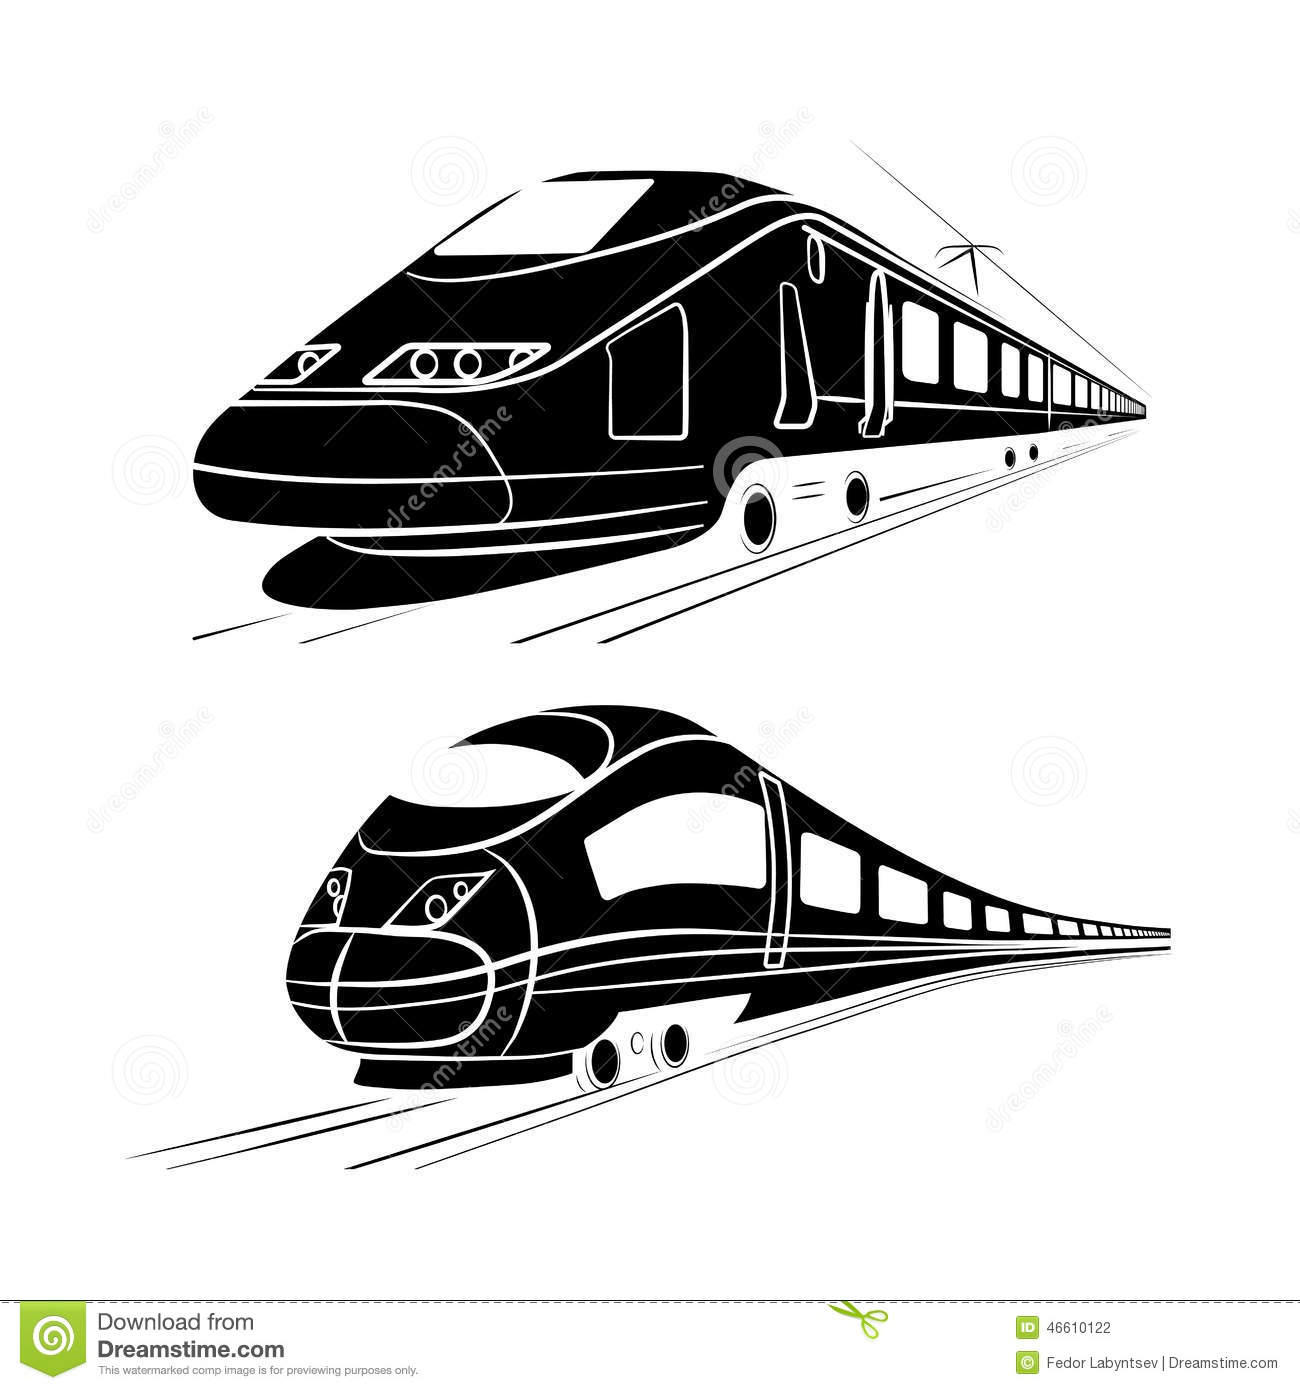 Monochrome Silhouette Of The High Speed Passenger Train